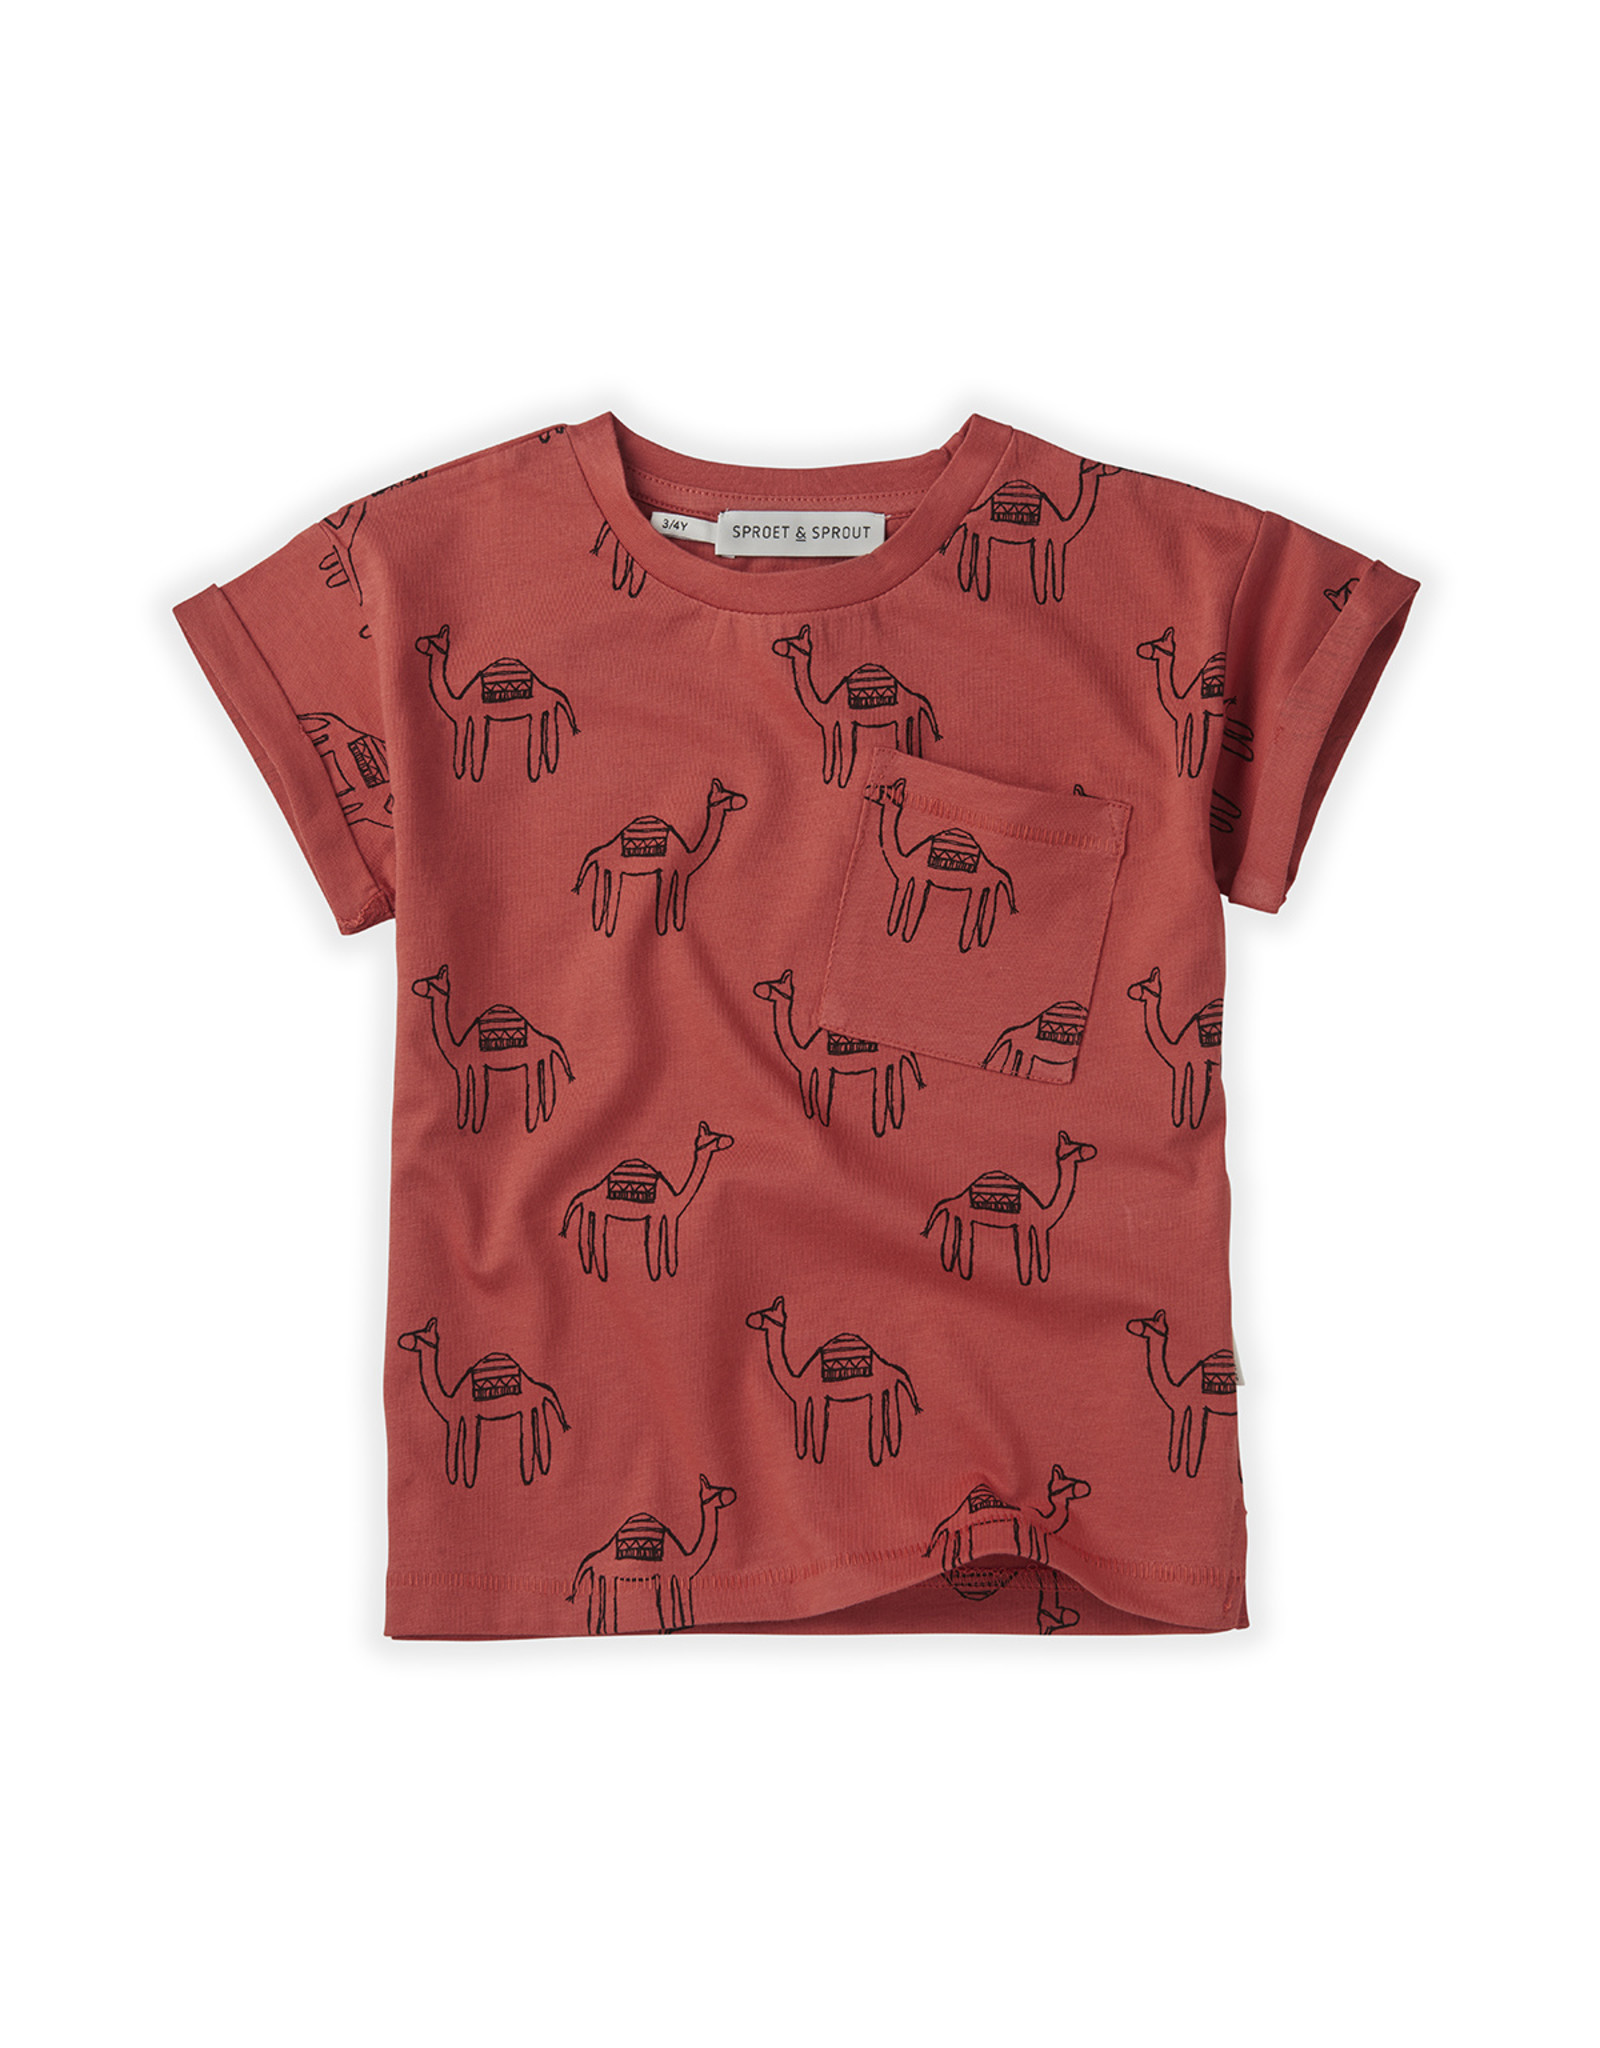 Sproet & Sprout SS - T-shirt Print Camel Cherry Red